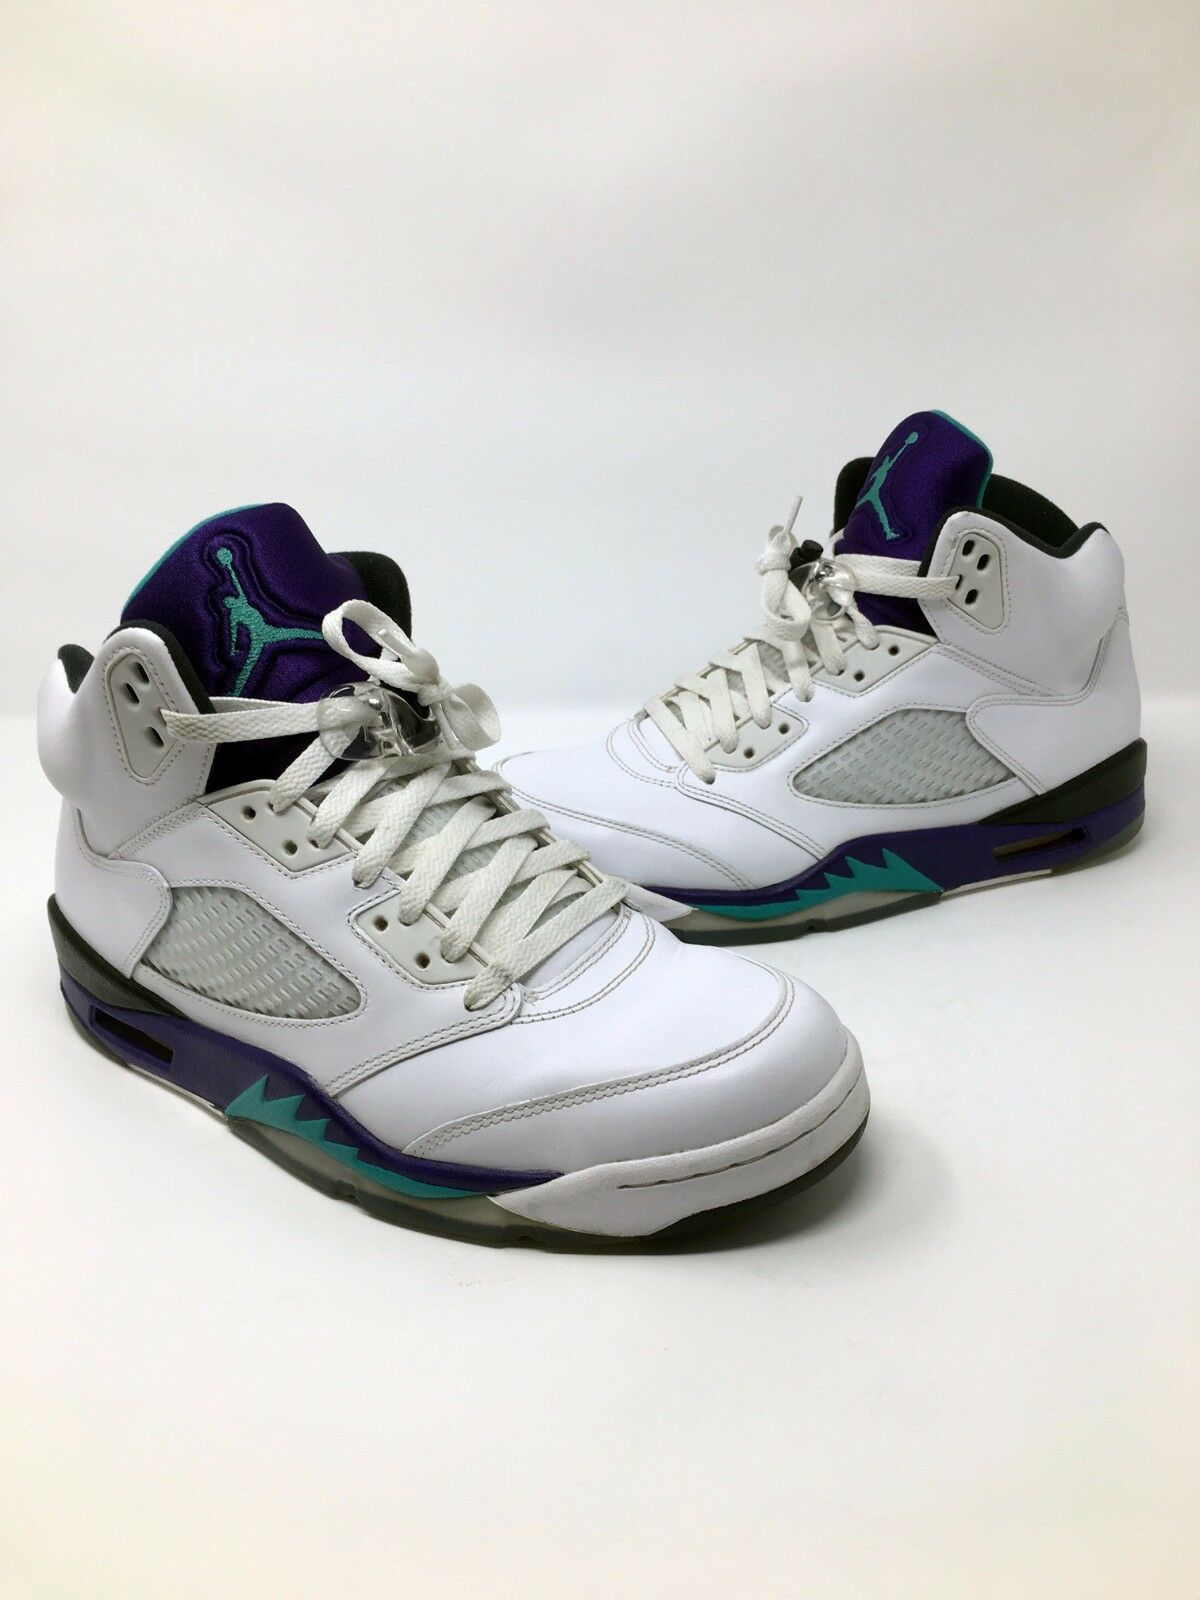 the latest 05cb6 78b7f closeout nike air uva jordan 5 retro v uva air púrpura 2018 136027 108  reduccion de